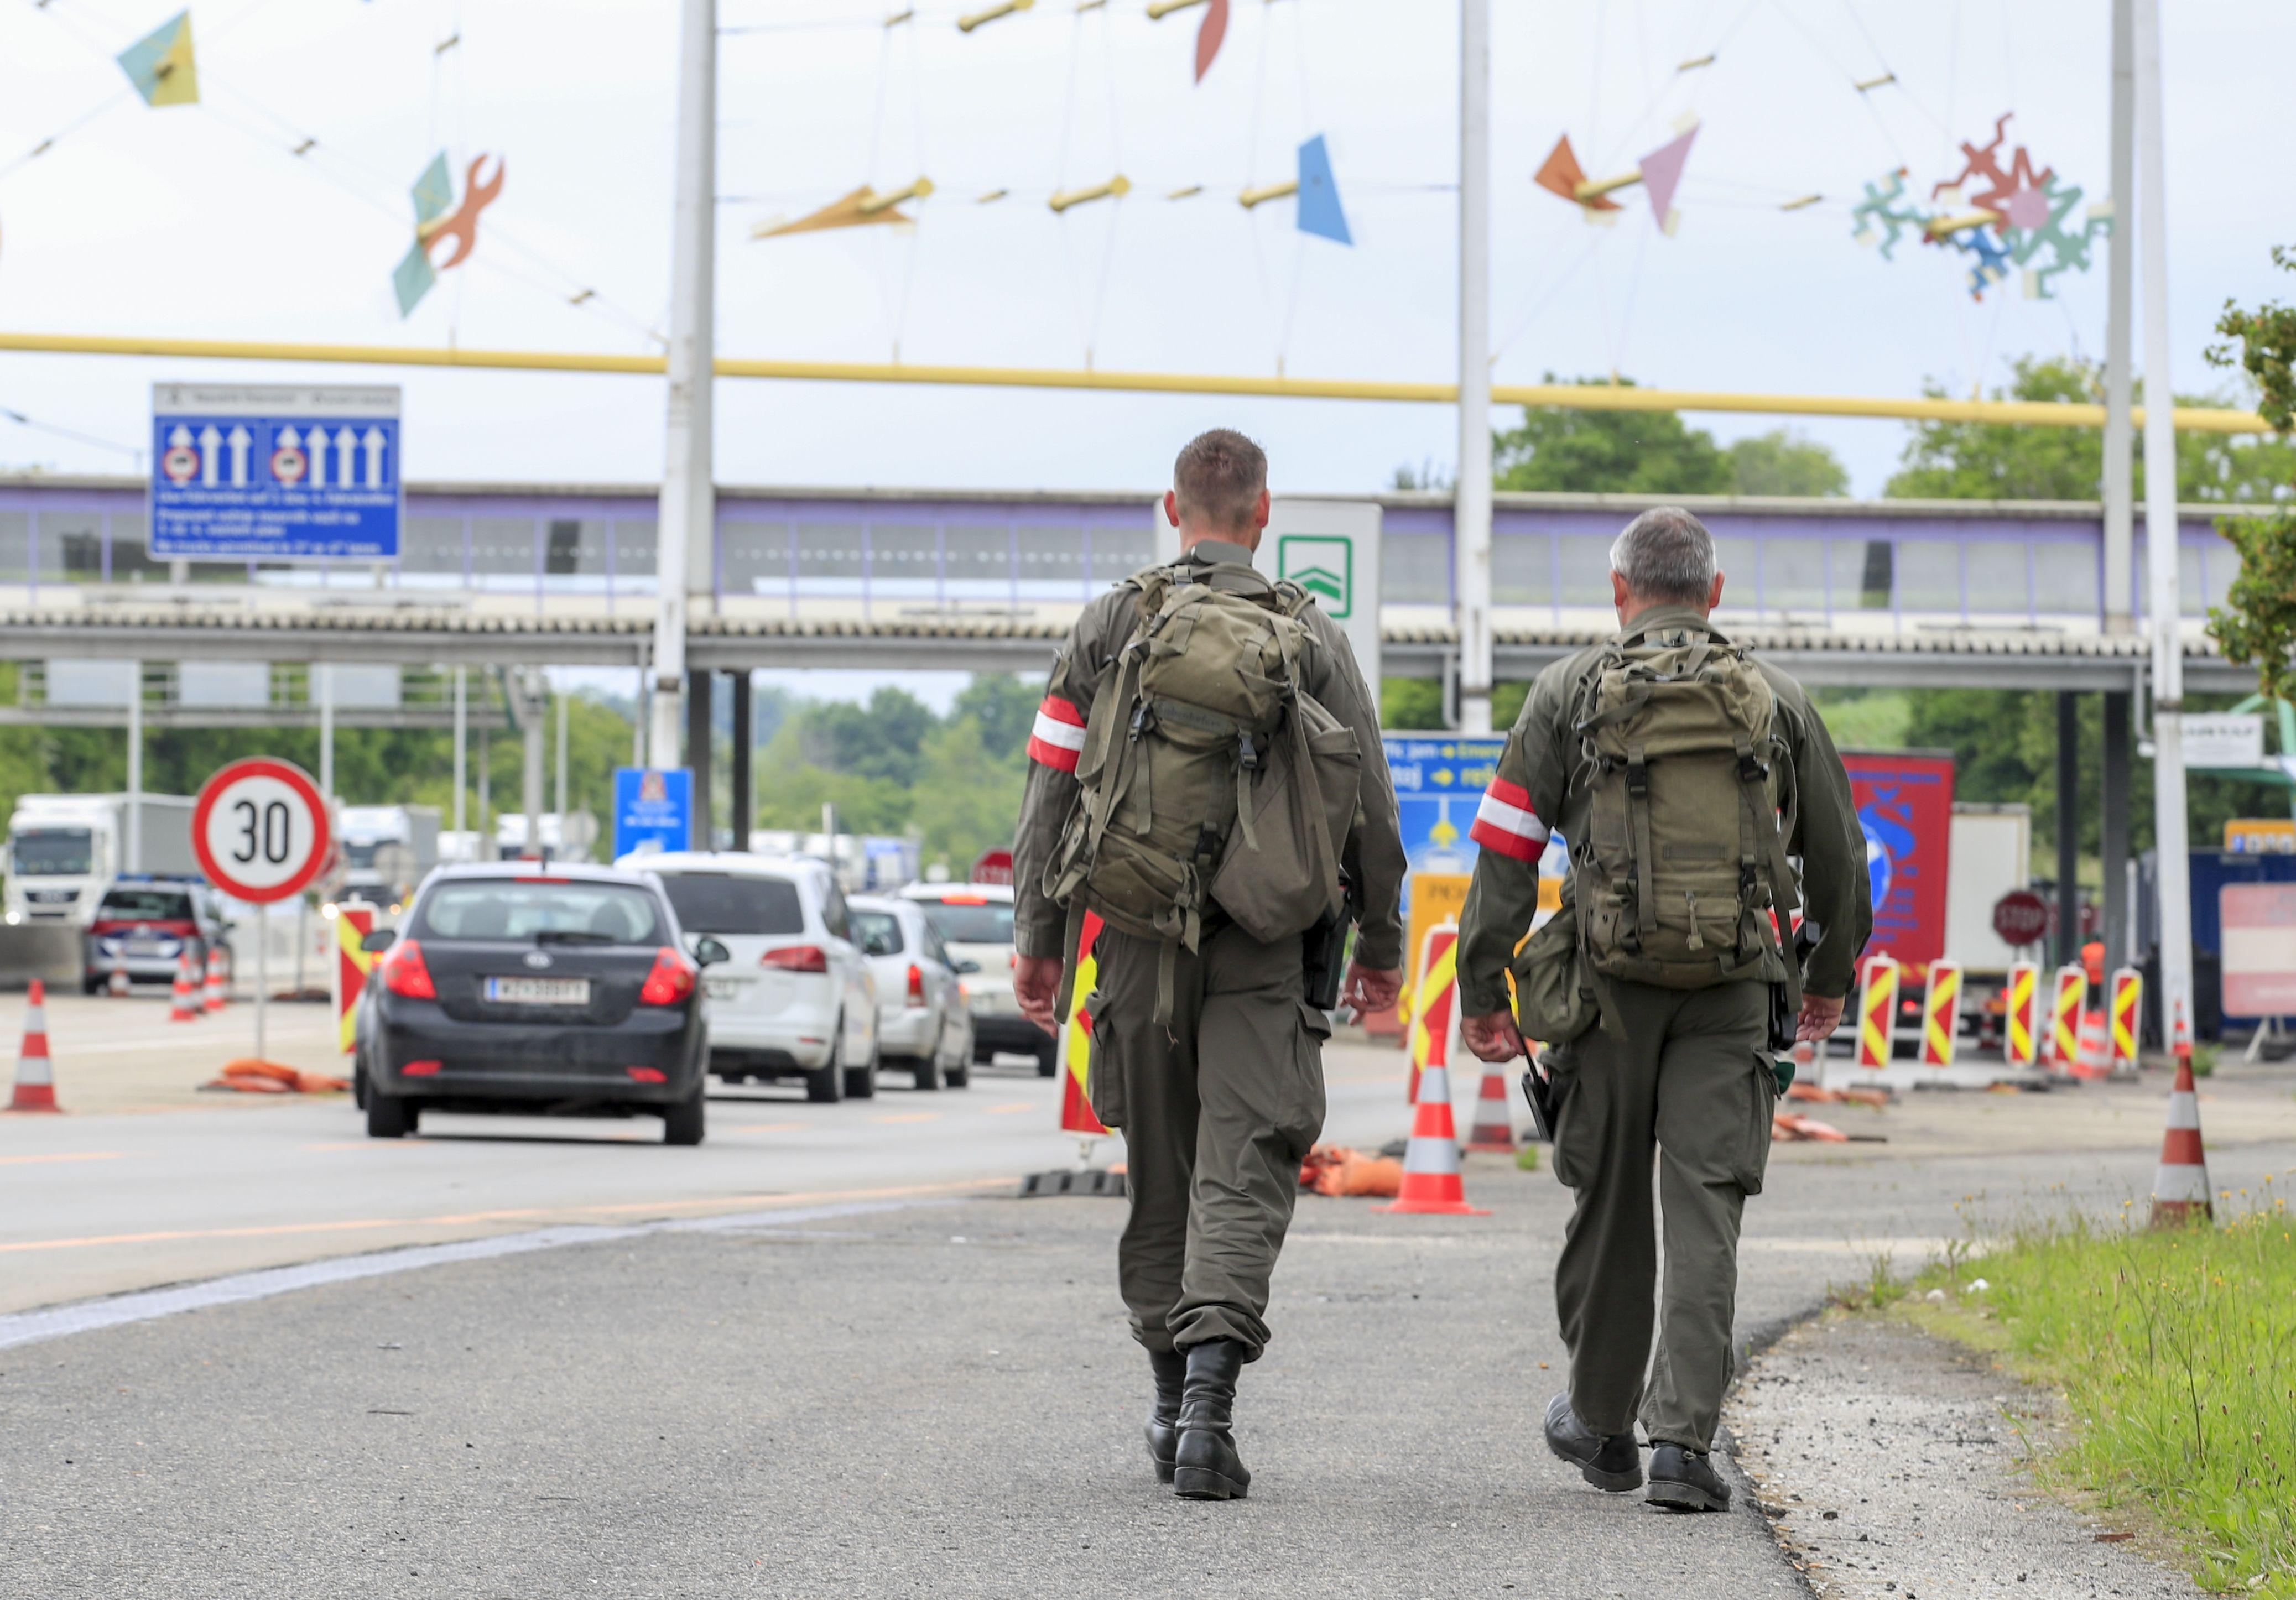 Austrian soldiers patrol at the Austrian-Slovenian border at the checkpoint near Spielfeld, Austria, on June 5, 2020. - Austria scrapped entry checks at its land borders introduced because of the coronavirus pandemic, except those at the frontier with Italy. Slovenia reciprocated the reopening from Friday, June 5, 2020 and lets in people travelling from Austria without checks. (Photo by ERWIN SCHERIAU / APA / AFP) / Austria OUT (Photo by ERWIN SCHERIAU/APA/AFP via Getty Images)